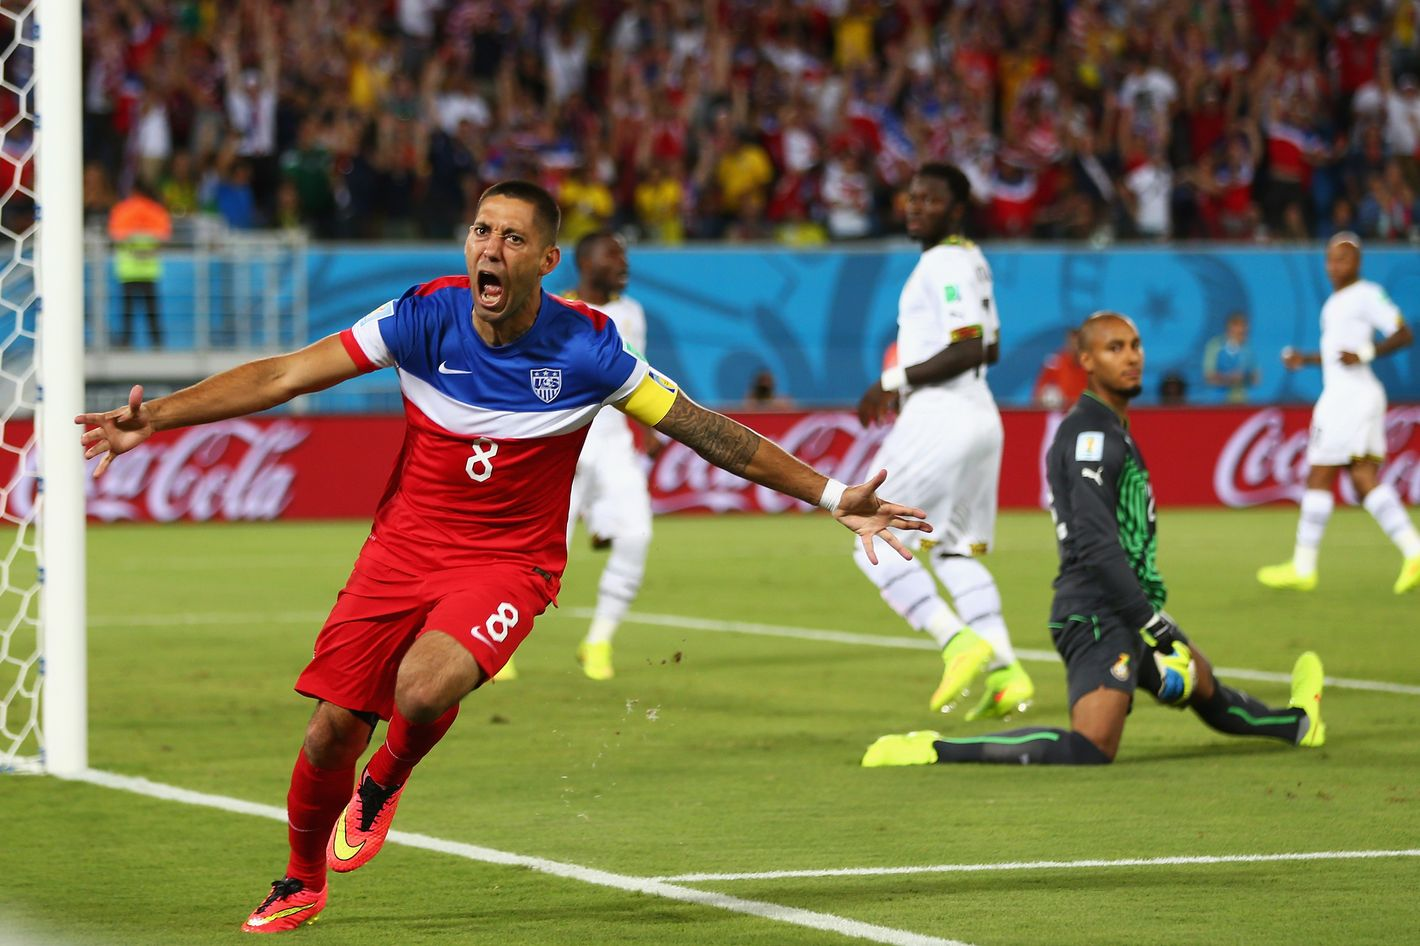 NATAL, BRAZIL - JUNE 16: Clint Dempsey of the United States reacts after scoring his team's first goal past goalkeeper Adam Kwarasey of Ghana during the 2014 FIFA World Cup Brazil Group G match between Ghana and the United States at Estadio das Dunas on June 16, 2014 in Natal, Brazil.  (Photo by Michael Steele/Getty Images)